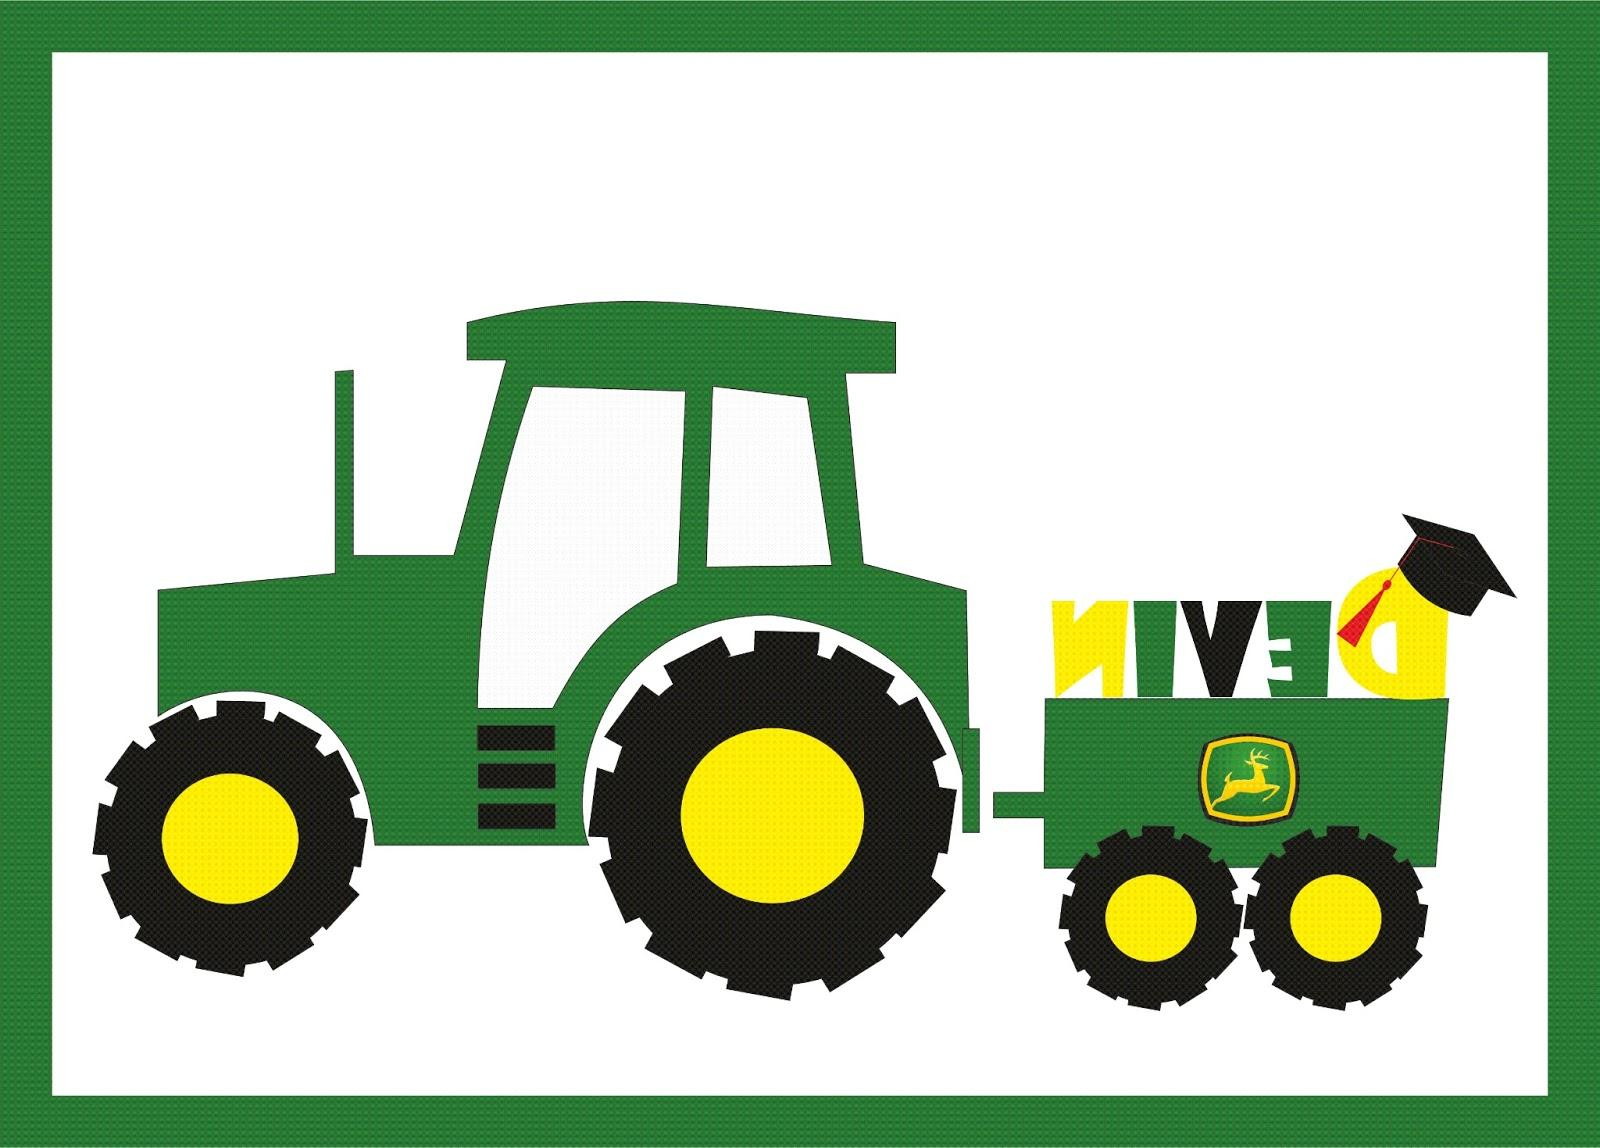 John deere tractor clipart free clip art library John Deere Top Tractor Clip Art Cdr Free Vector Images Png ... clip art library